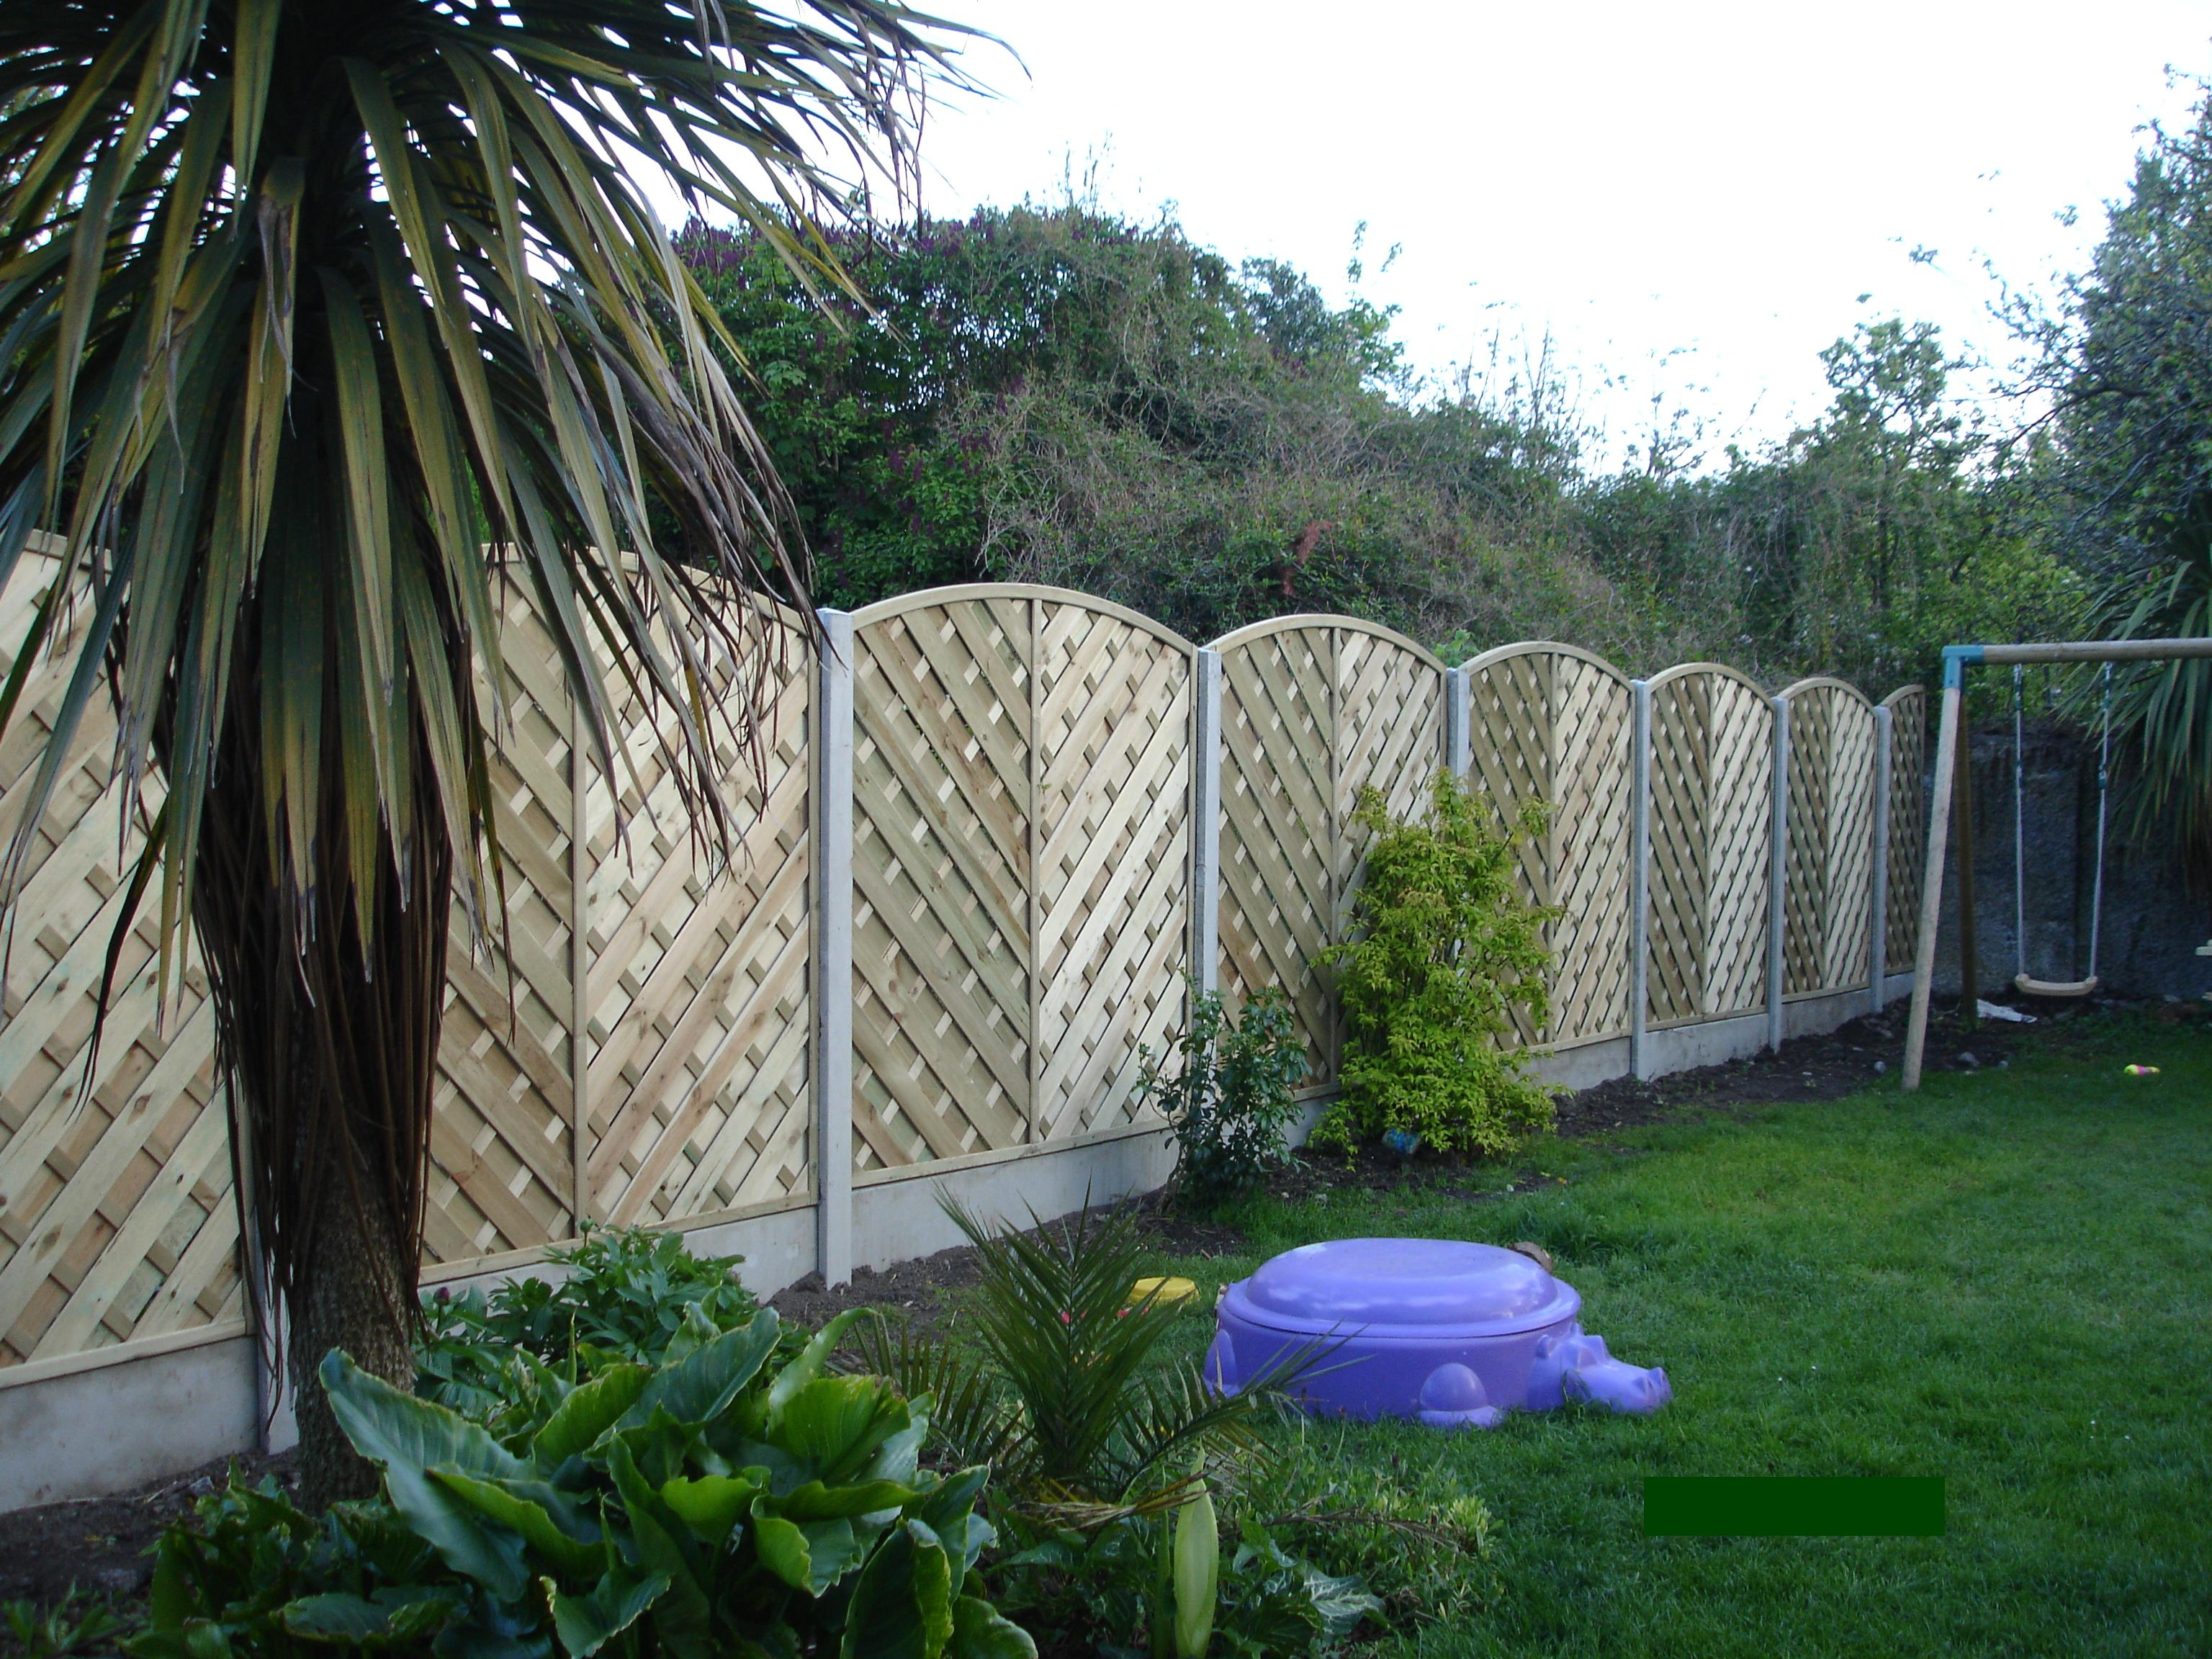 DECORATIVE PRIVACY FENCE HOW TO MAKE FENCE